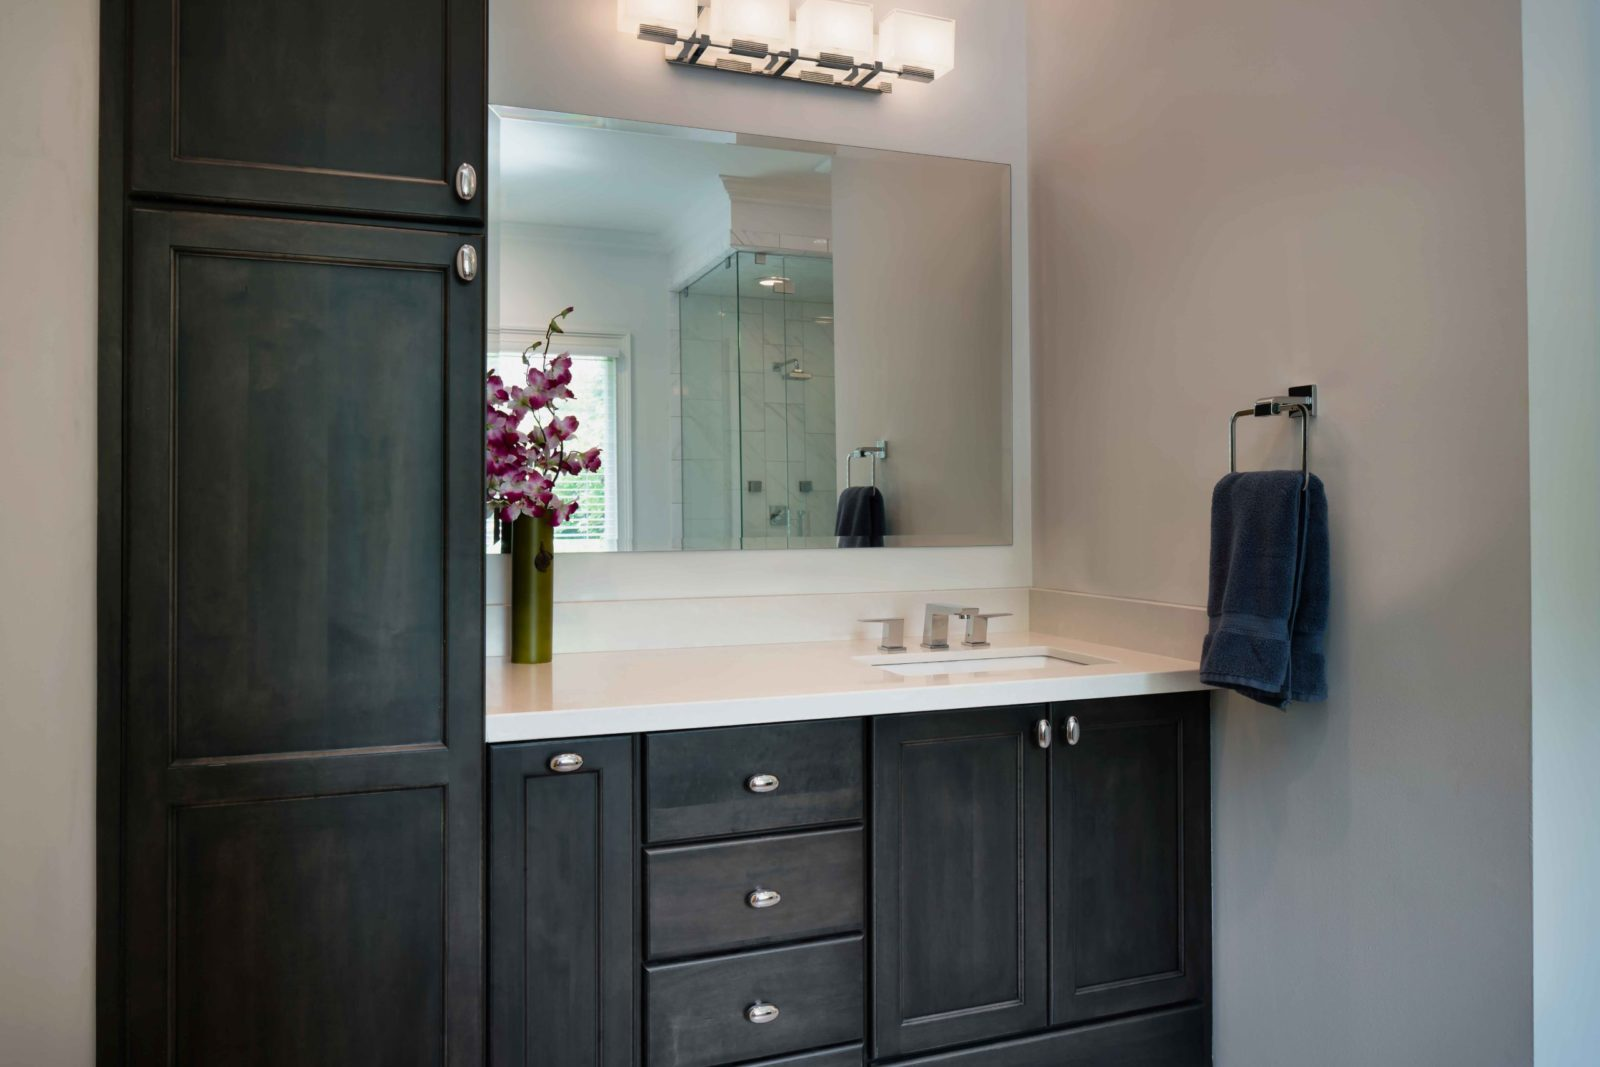 bath-remodel-revision-design-spa-bath-vanity-storage